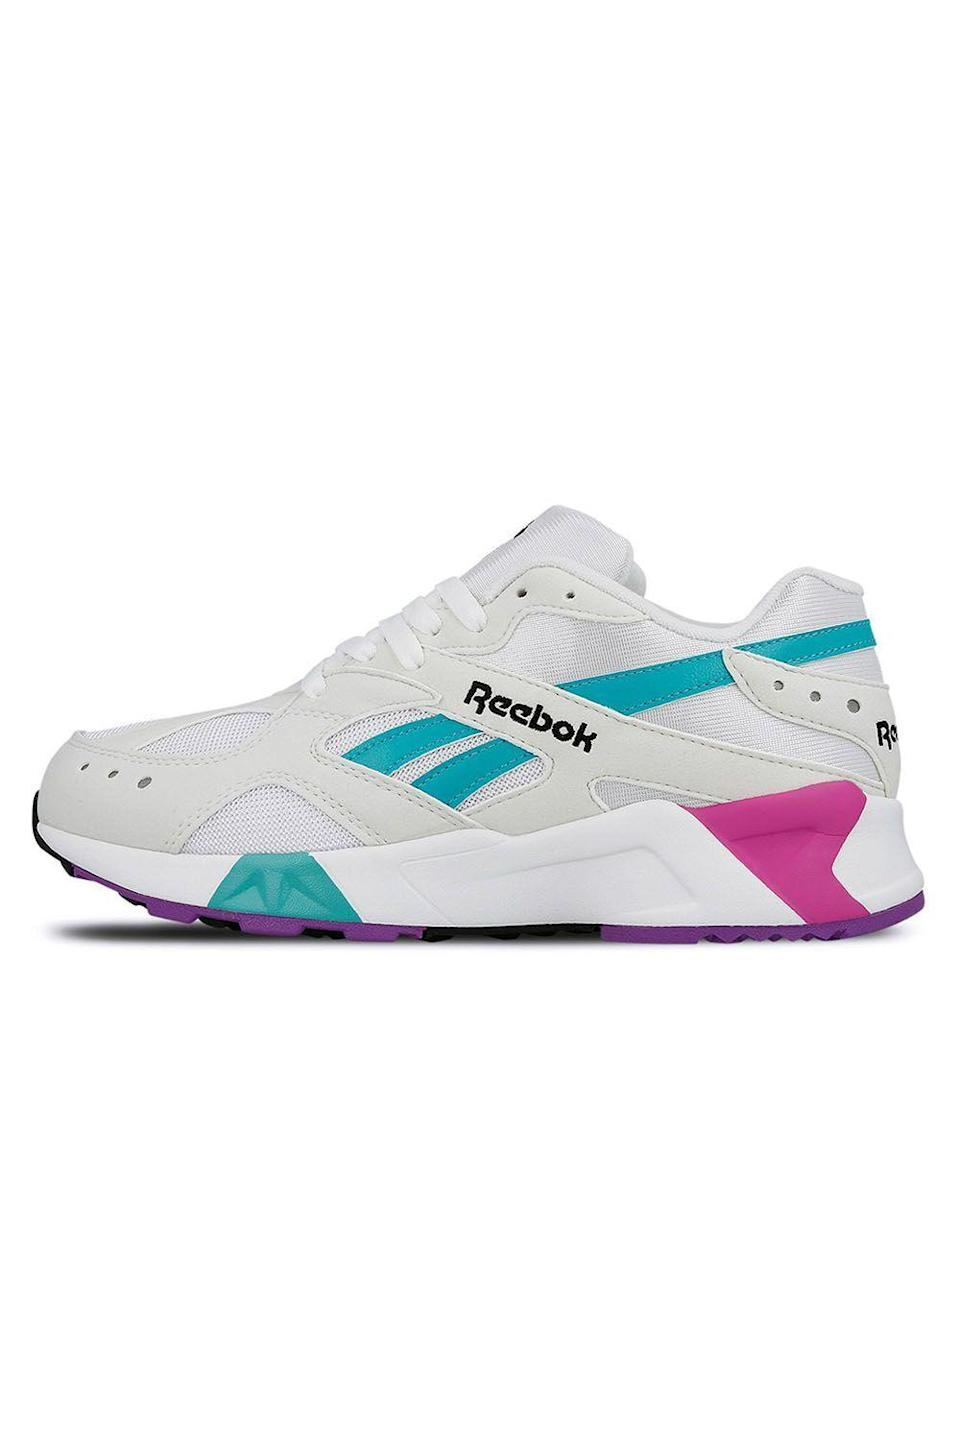 """<p><strong>reebok</strong></p><p>reebok.com</p><p><strong>$79.97</strong></p><p><a href=""""https://go.redirectingat.com?id=74968X1596630&url=https%3A%2F%2Fwww.reebok.com%2Fus%2Faztrek-shoes%2FDV3747.html&sref=https%3A%2F%2Fwww.cosmopolitan.com%2Fstyle-beauty%2Fbeauty%2Fg33482166%2Feditor-picks-cosmo-klarna-hauliday-2020%2F"""" rel=""""nofollow noopener"""" target=""""_blank"""" data-ylk=""""slk:Shop Now"""" class=""""link rapid-noclick-resp"""">Shop Now</a></p><p>""""I've had my eye on these Reebok Aztrek <a href=""""https://www.cosmopolitan.com/style-beauty/fashion/g27104379/summer-sneakers-for-women/"""" rel=""""nofollow noopener"""" target=""""_blank"""" data-ylk=""""slk:shoes"""" class=""""link rapid-noclick-resp"""">shoes</a> for SO LONG, and I can't wait to finally cop a pair. Not only am I obsessed with their retro vibe, <strong>they're perfect for my daily WFH walk <em>and</em> my IG feed.""""</strong>—<em>Nia Chavez, Snapchat motion designer</em></p><p><strong><strong><strong><strong><strong><strong>💫</strong></strong></strong></strong></strong>PROMOTION:</strong> Enjoy 40% off all items with the code <strong>KLARNAHAULIDAY</strong>.<br></p>"""